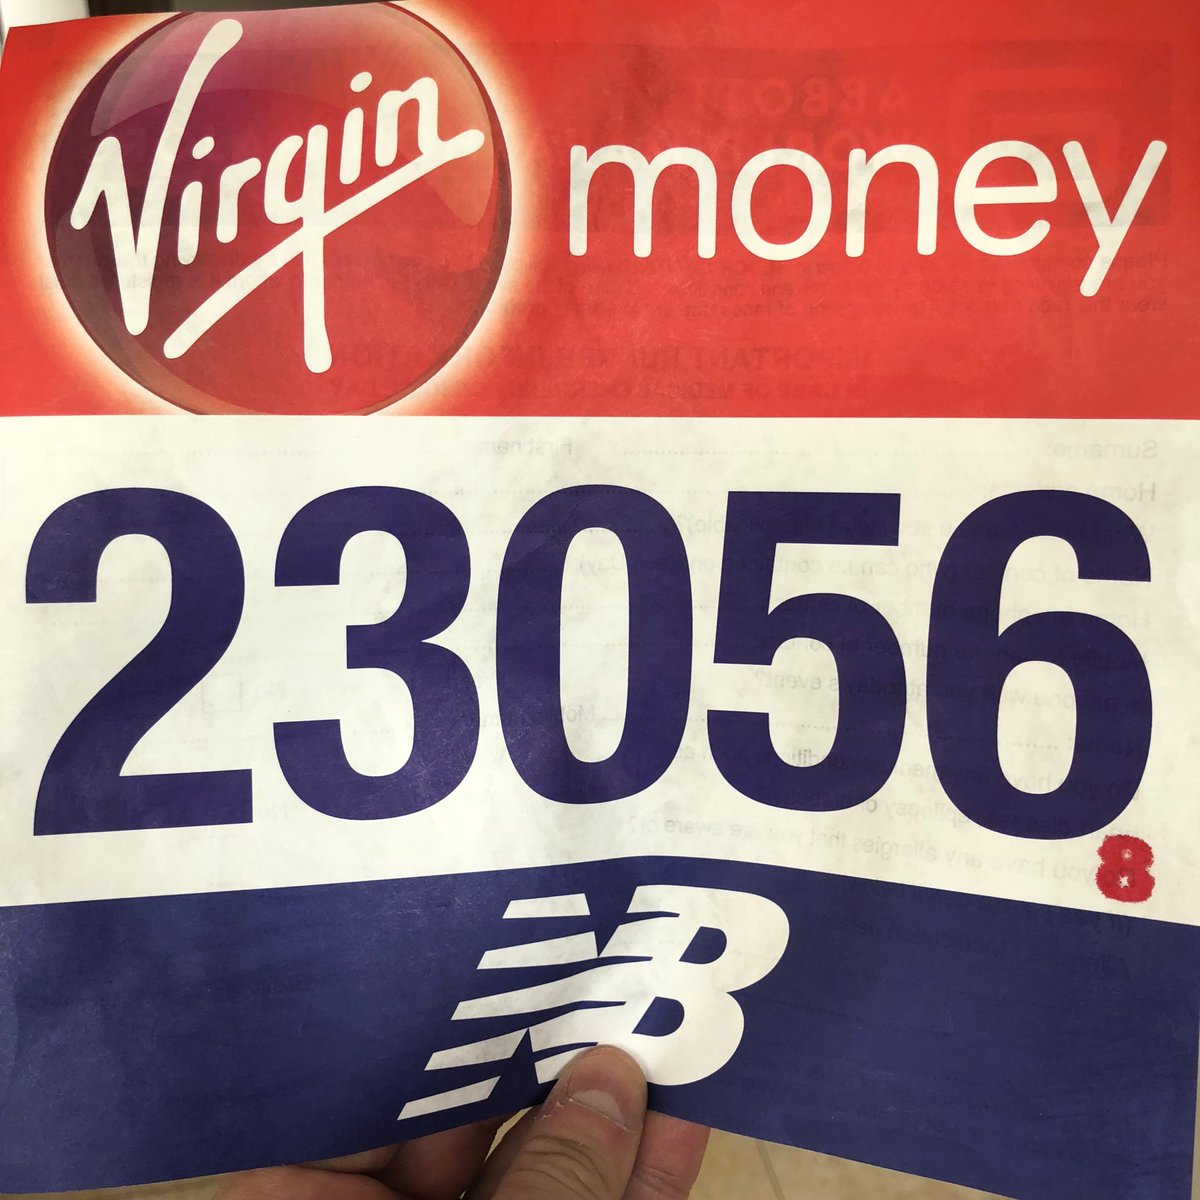 No backing out now #londonmarathon - remember I running for the children of alcoholics charity @NacoaUK https://t.co/TTzIrsPktb